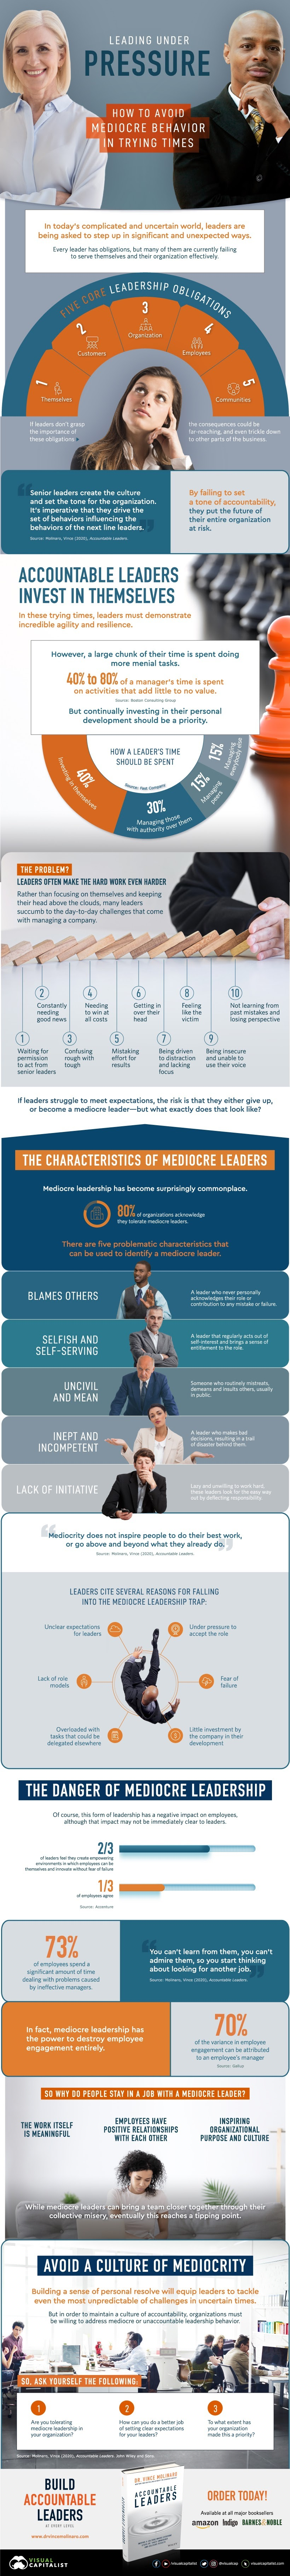 How to Avoid Mediocre Leadership in Trying Times #infographic